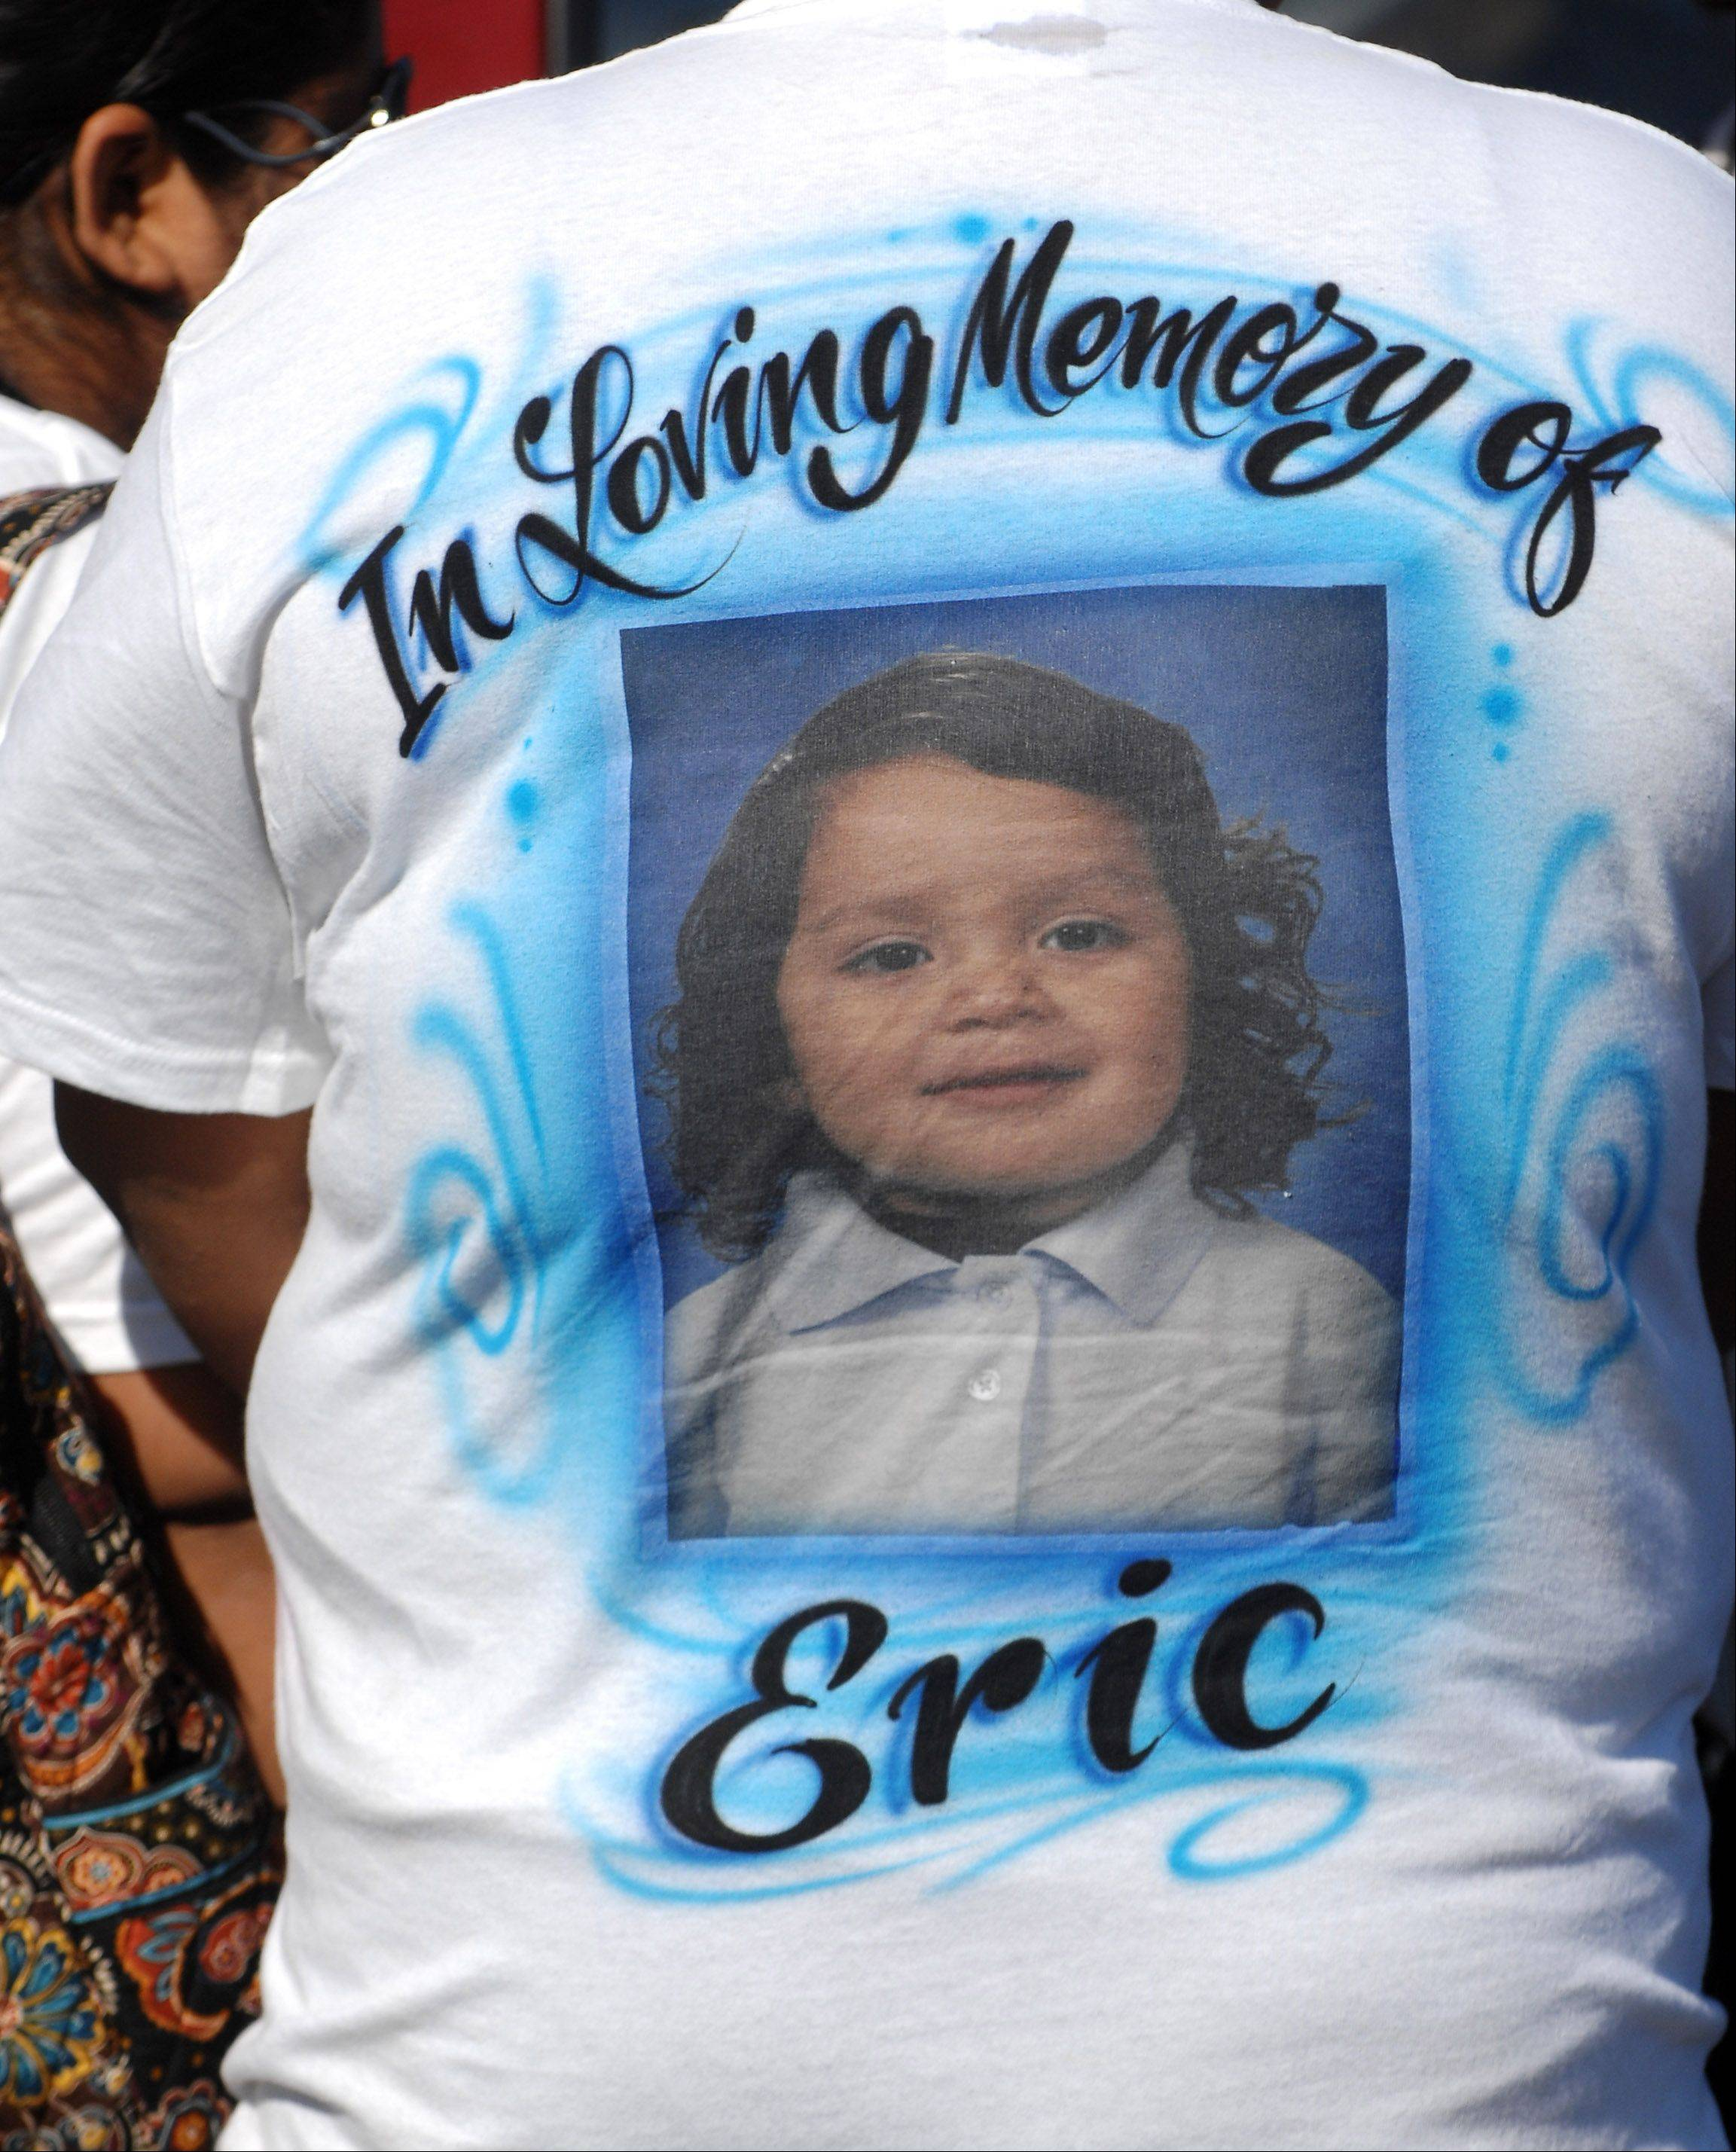 Family and friends wore T-shirts in memory of 5-year-old Eric M. Galarza Jr. at his funeral at St. Joseph Catholic Church in Elgin Wednesday.